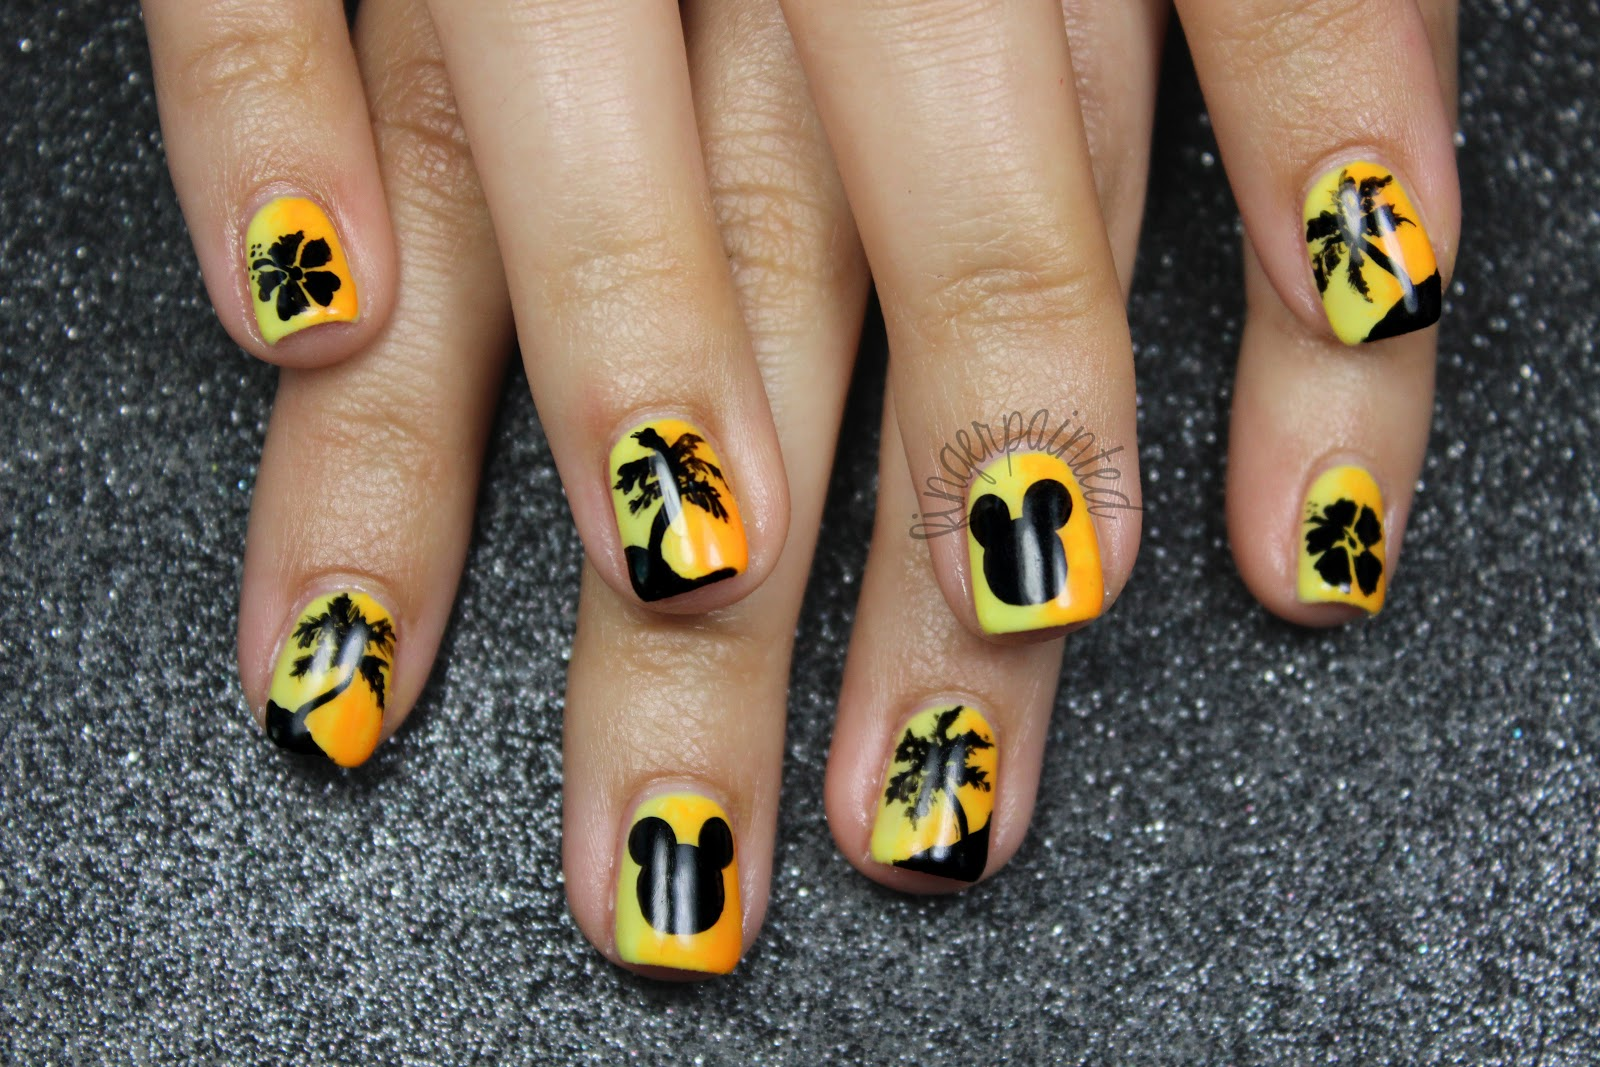 Nail Design With Names: Gallery for gt nails designs with names ...